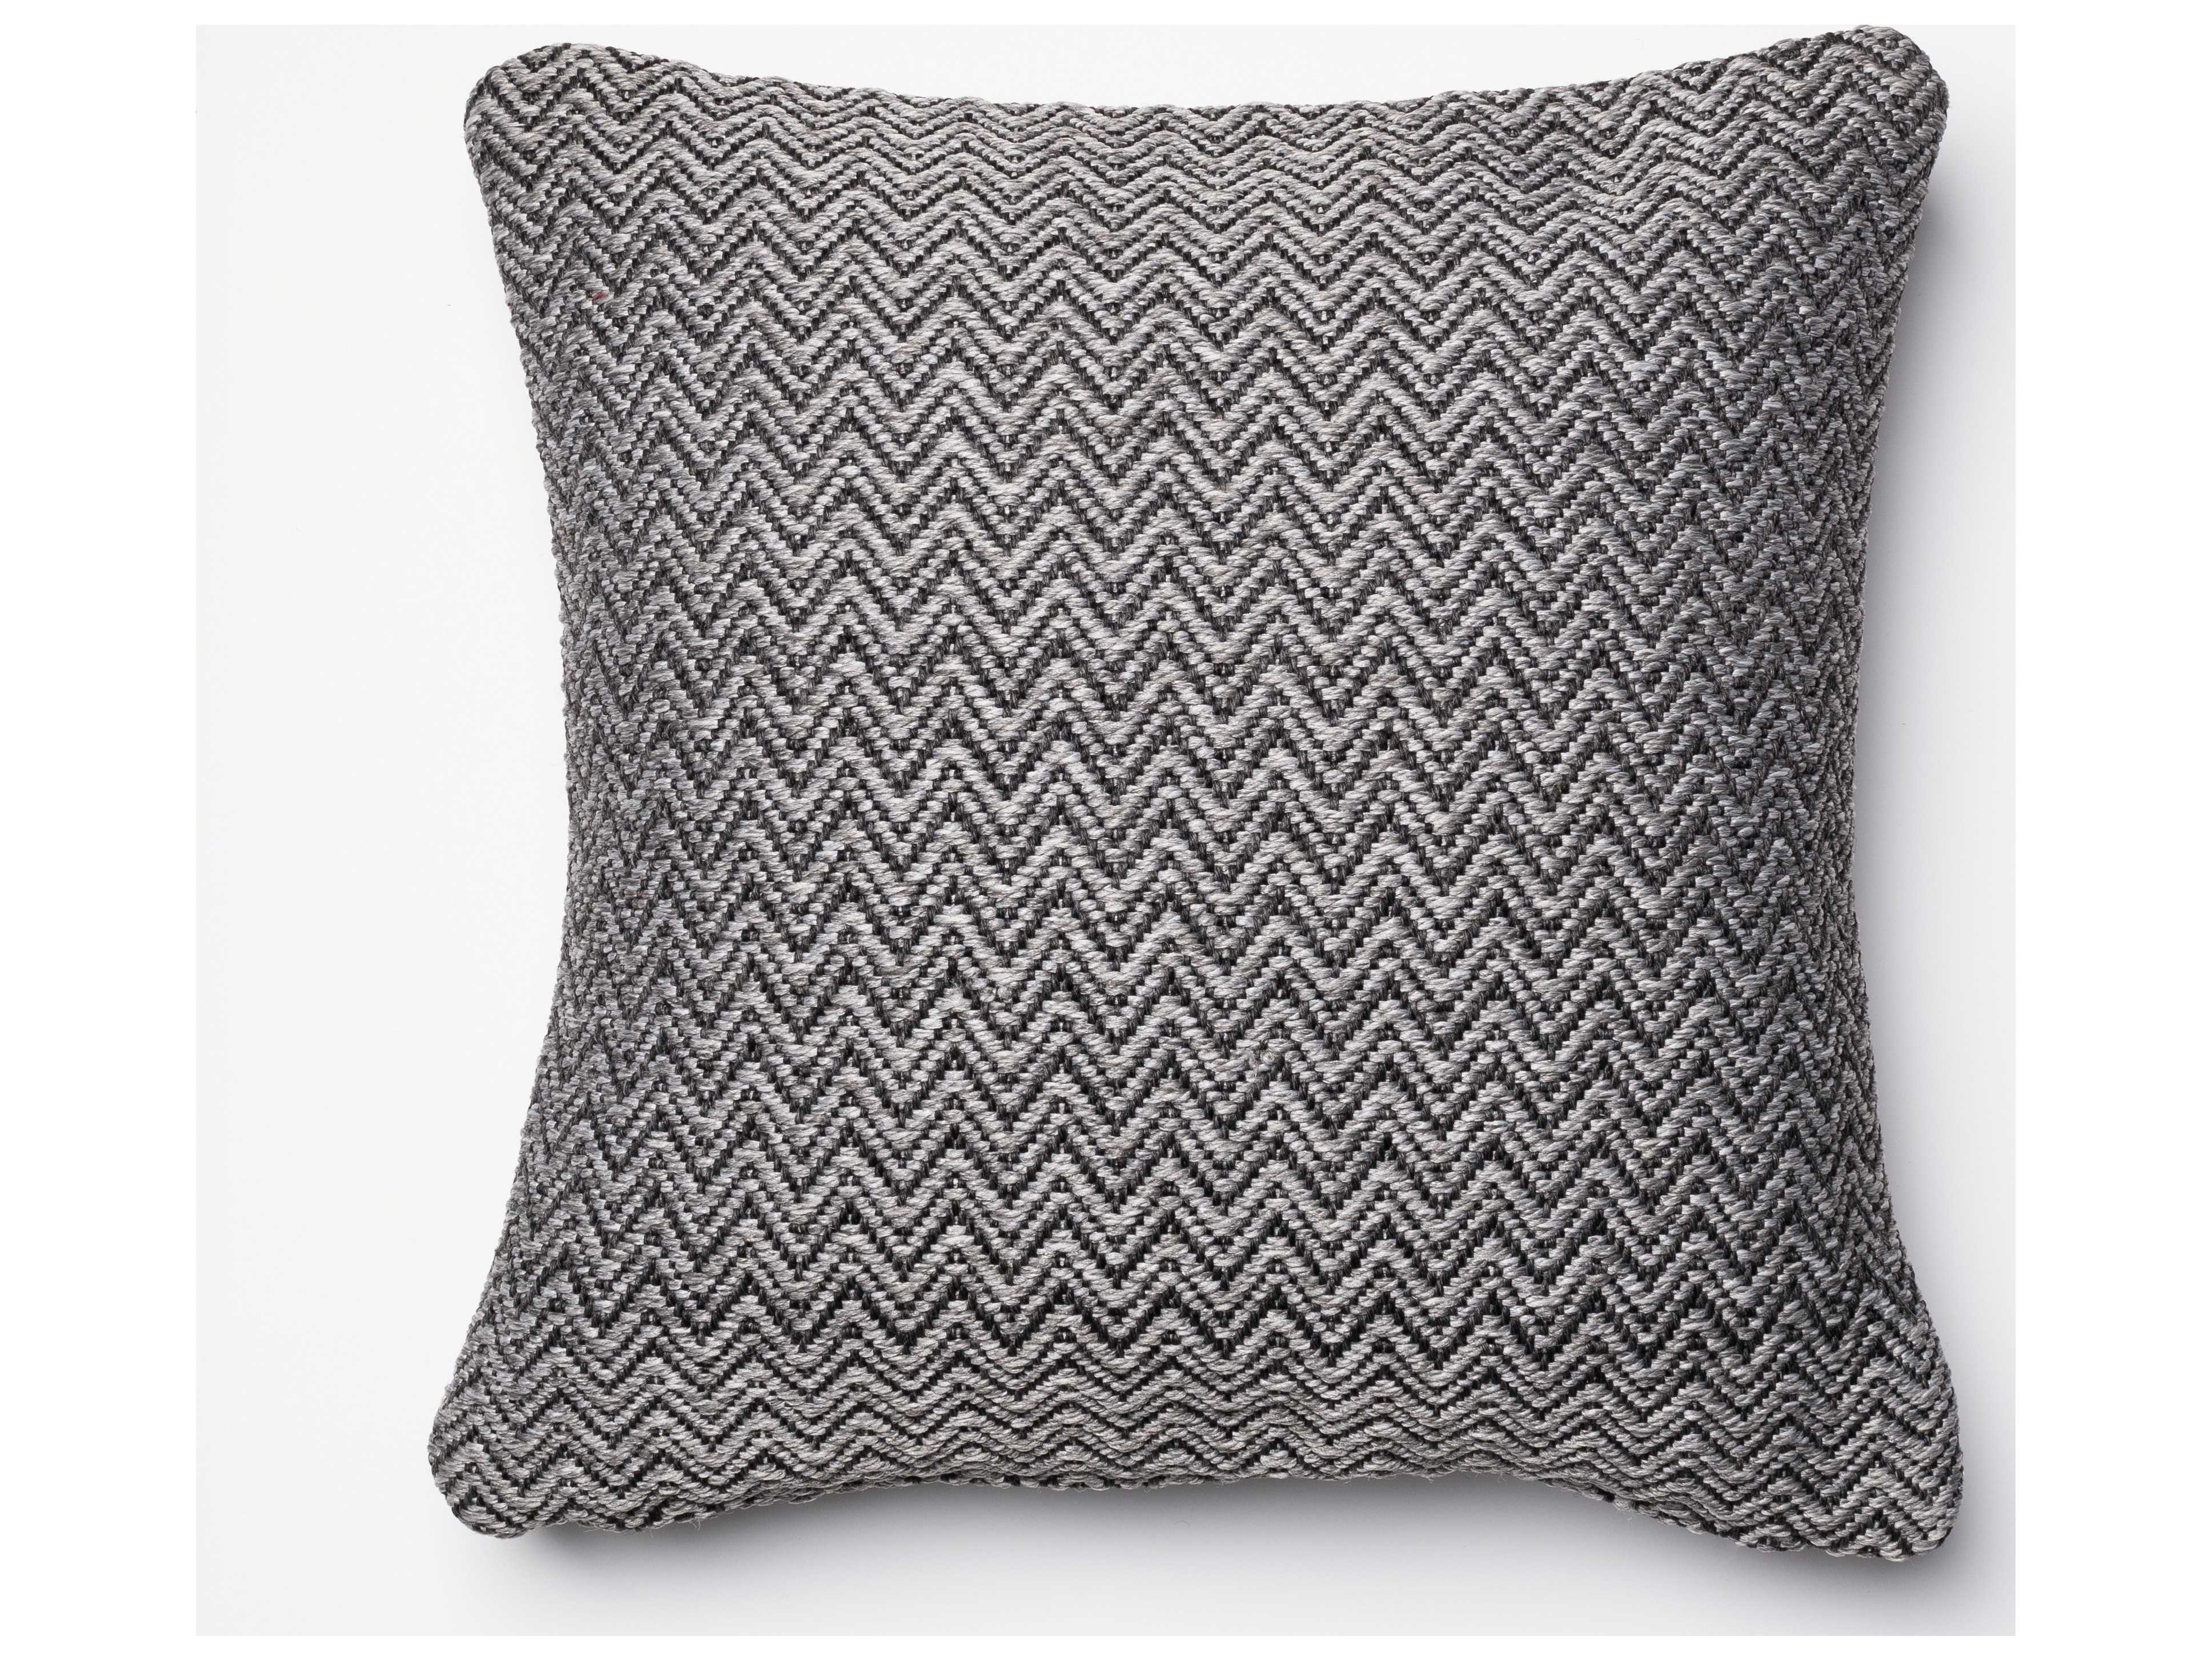 Loloi Rugs 18'' Square Charcoal & Grey Pillow